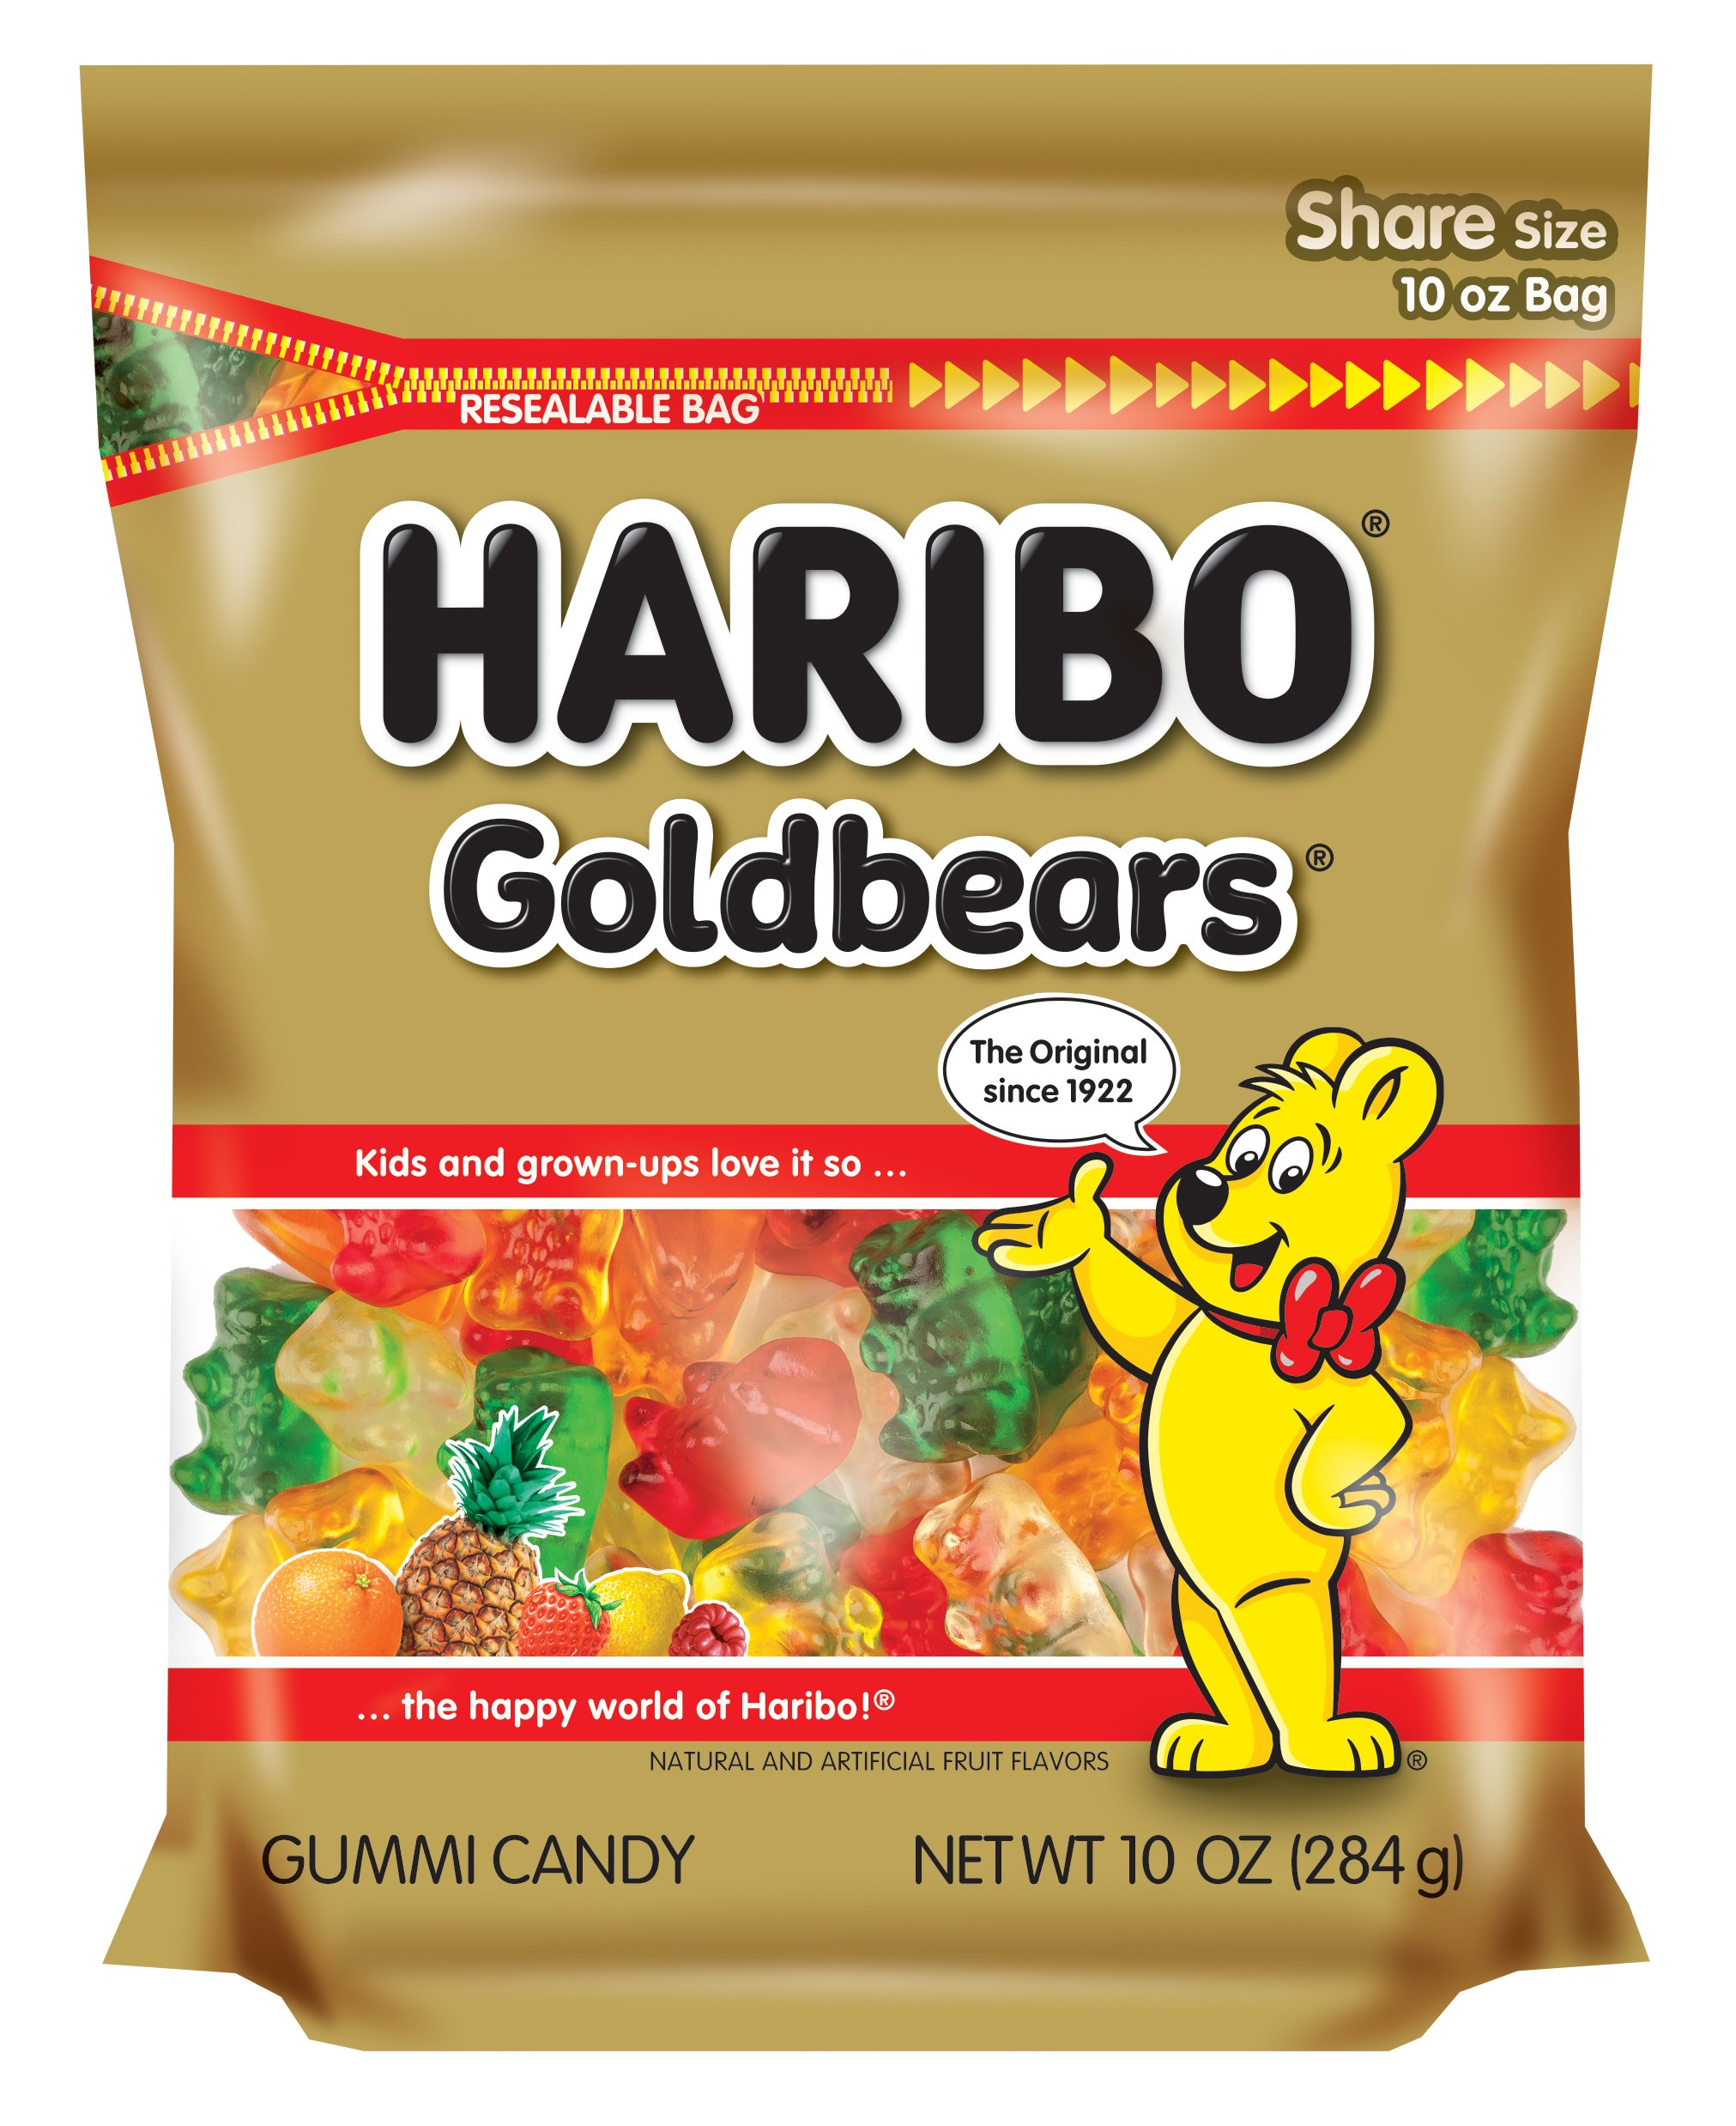 Haribo Goldbears Gummi Candy, Resealable Zipper Bag, 10 Ounce (Pack of 8) by Haribo